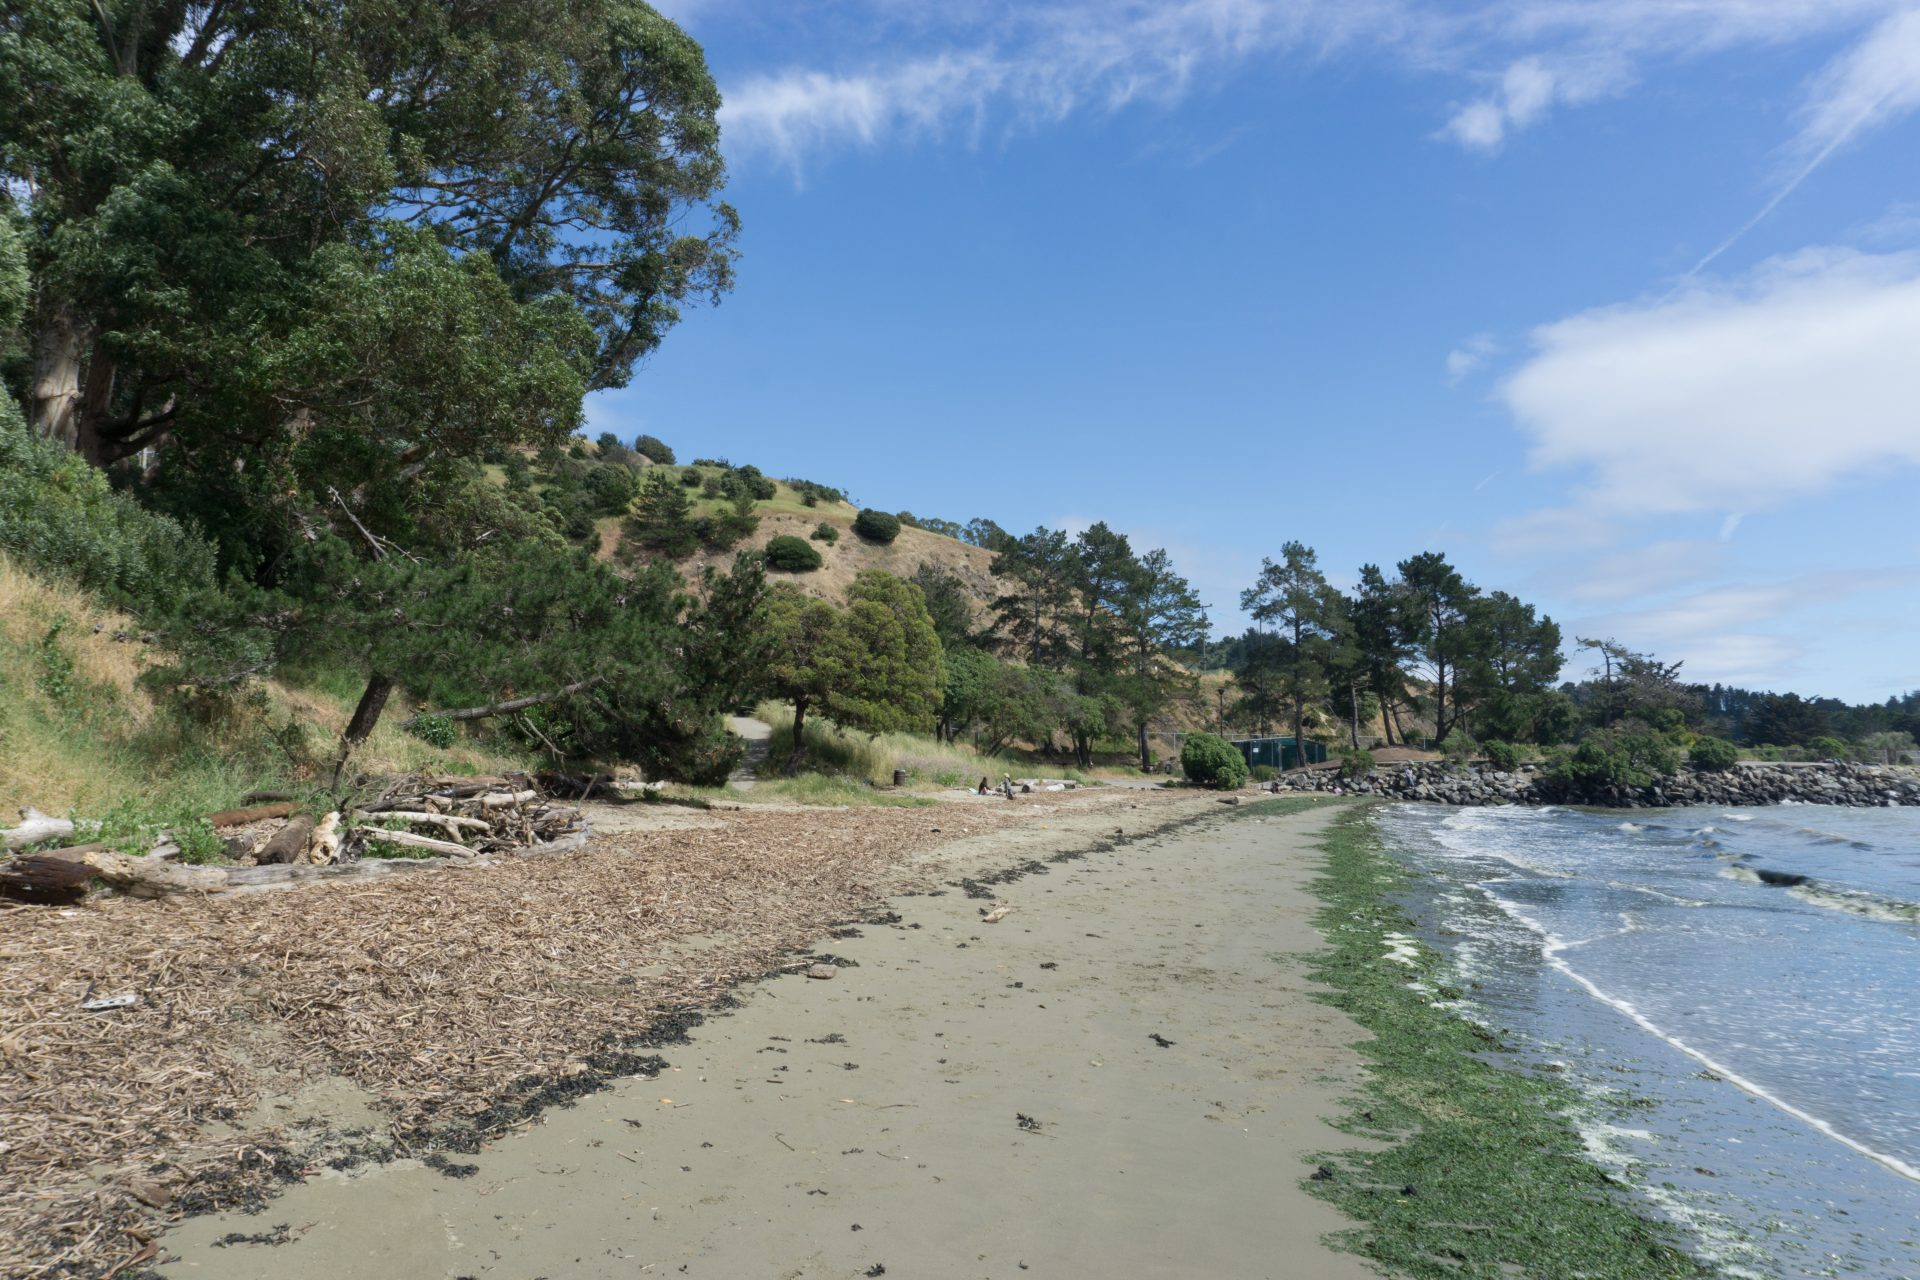 Looking up beach with brown beach wrack on left, green algae on right